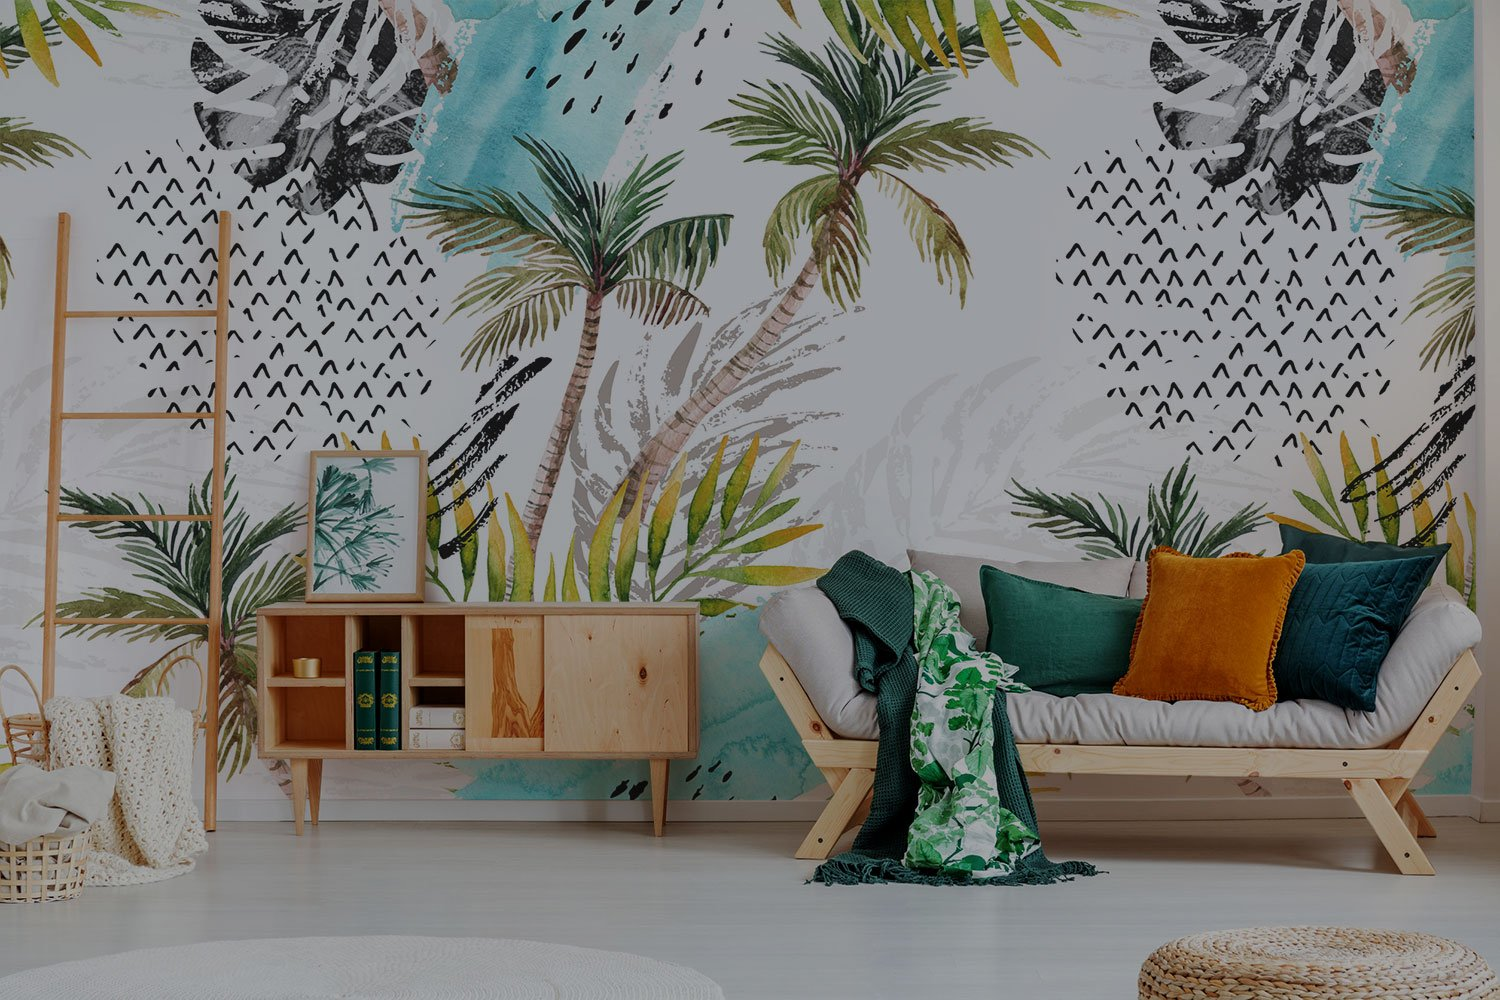 Shop thousands of high quality wall murals and photo wallpaper.